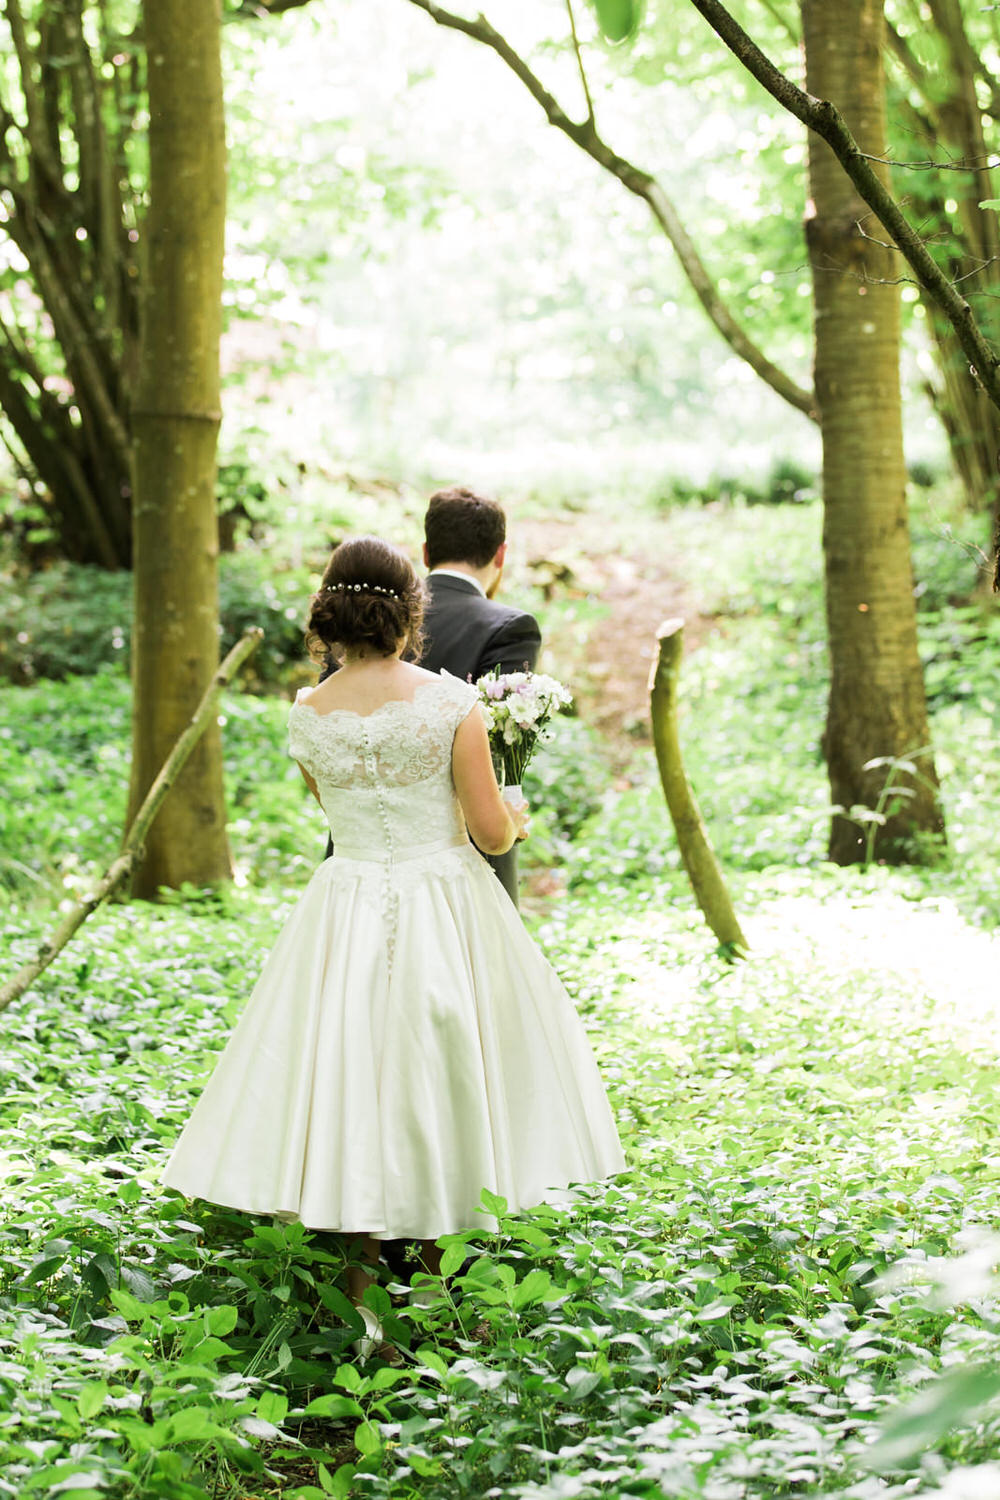 Special-Day-Photography-The-Barn-At-Upcote-Cheltenham-Couples-photography-in-the-woods-in-Cheltenham.jpg